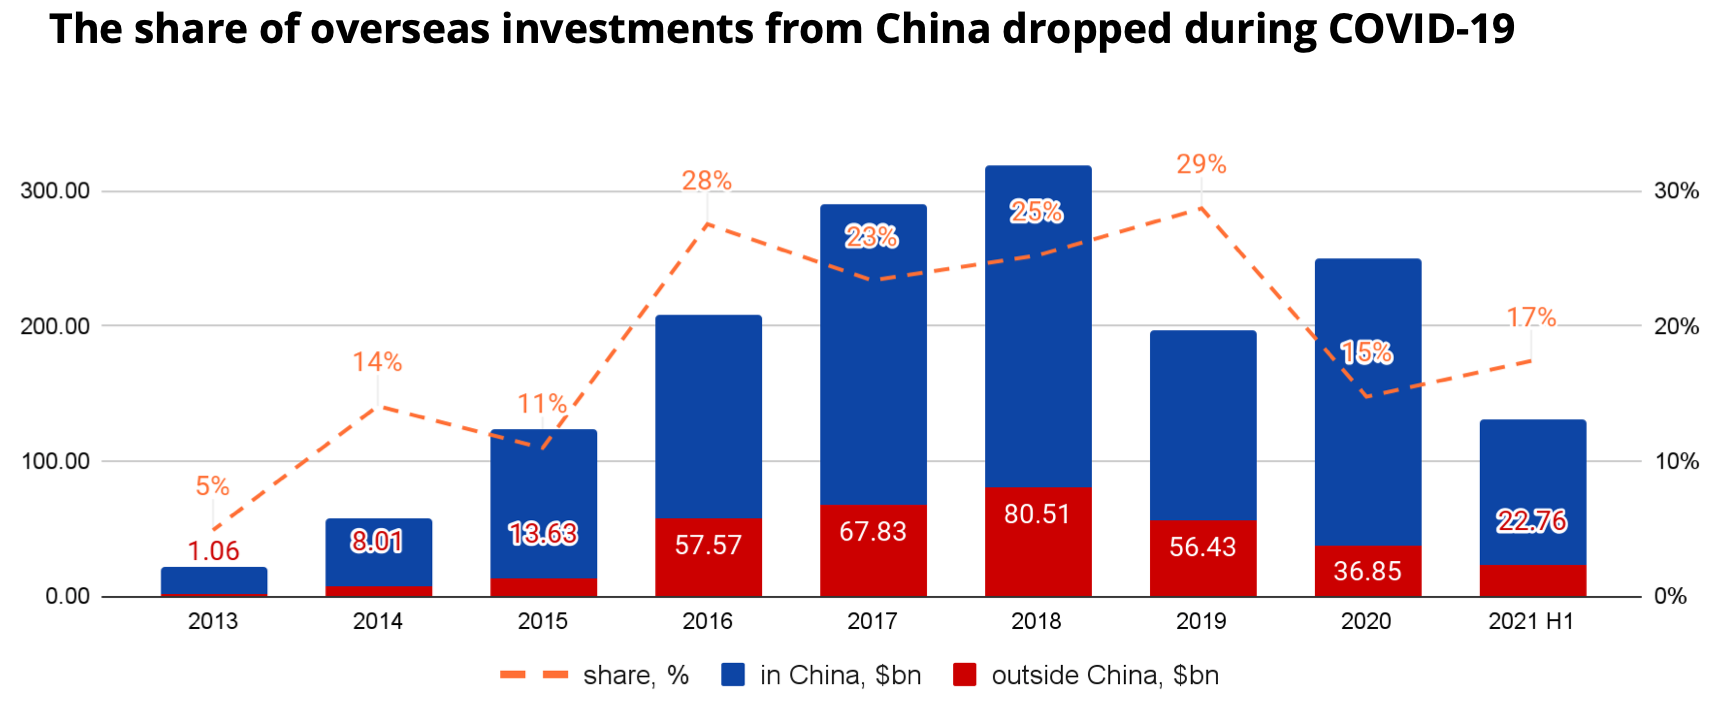 Dynamics of Chinese investments. $bn. Source: Crunchbase, ITjuzi